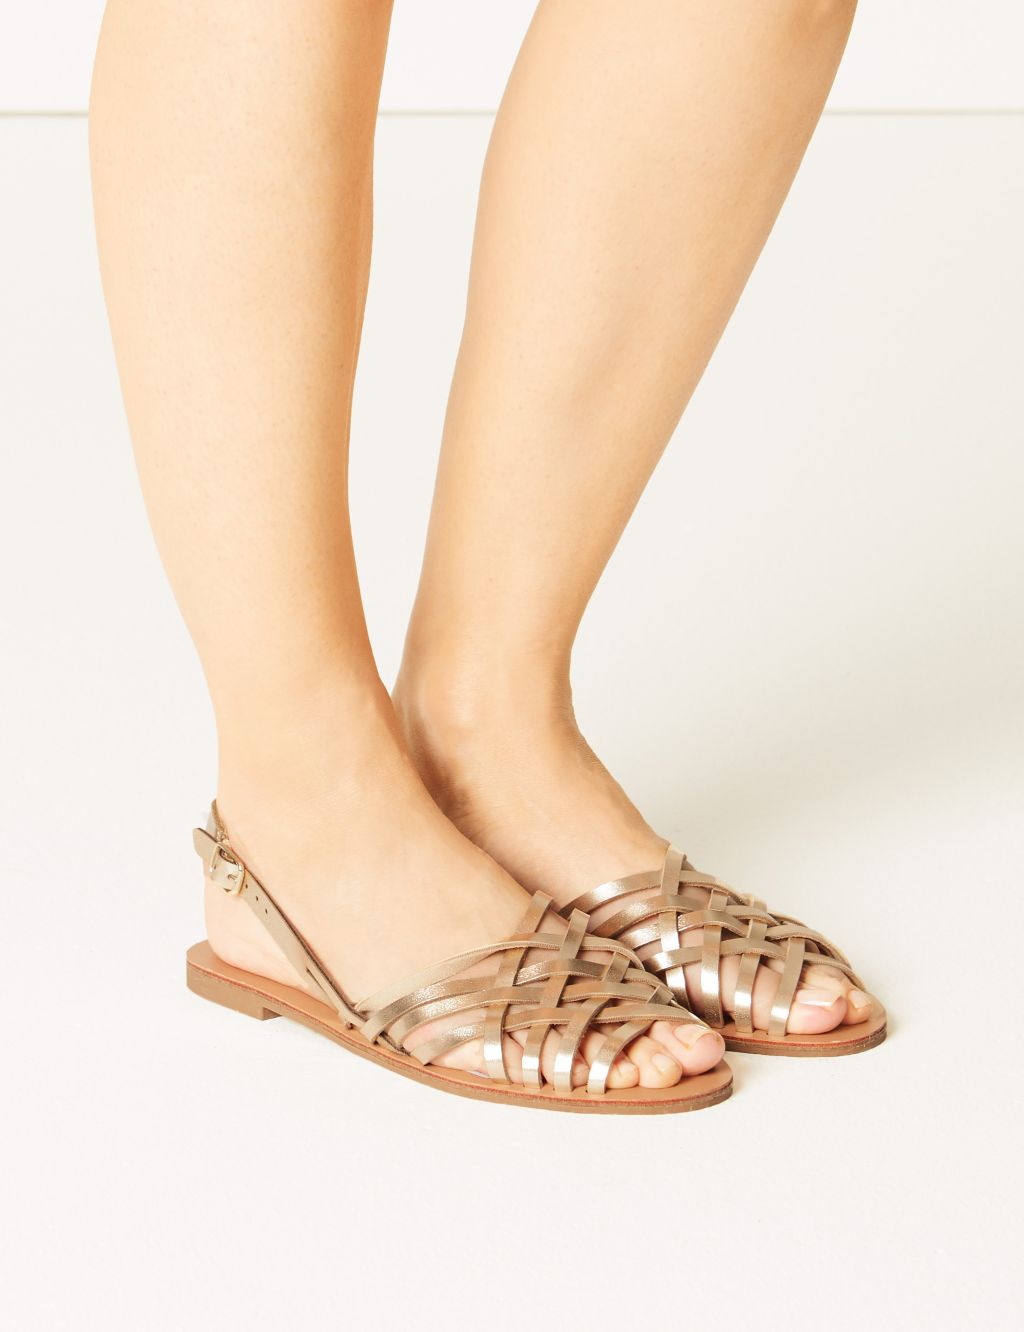 m&s-cross-over-strap_sandals